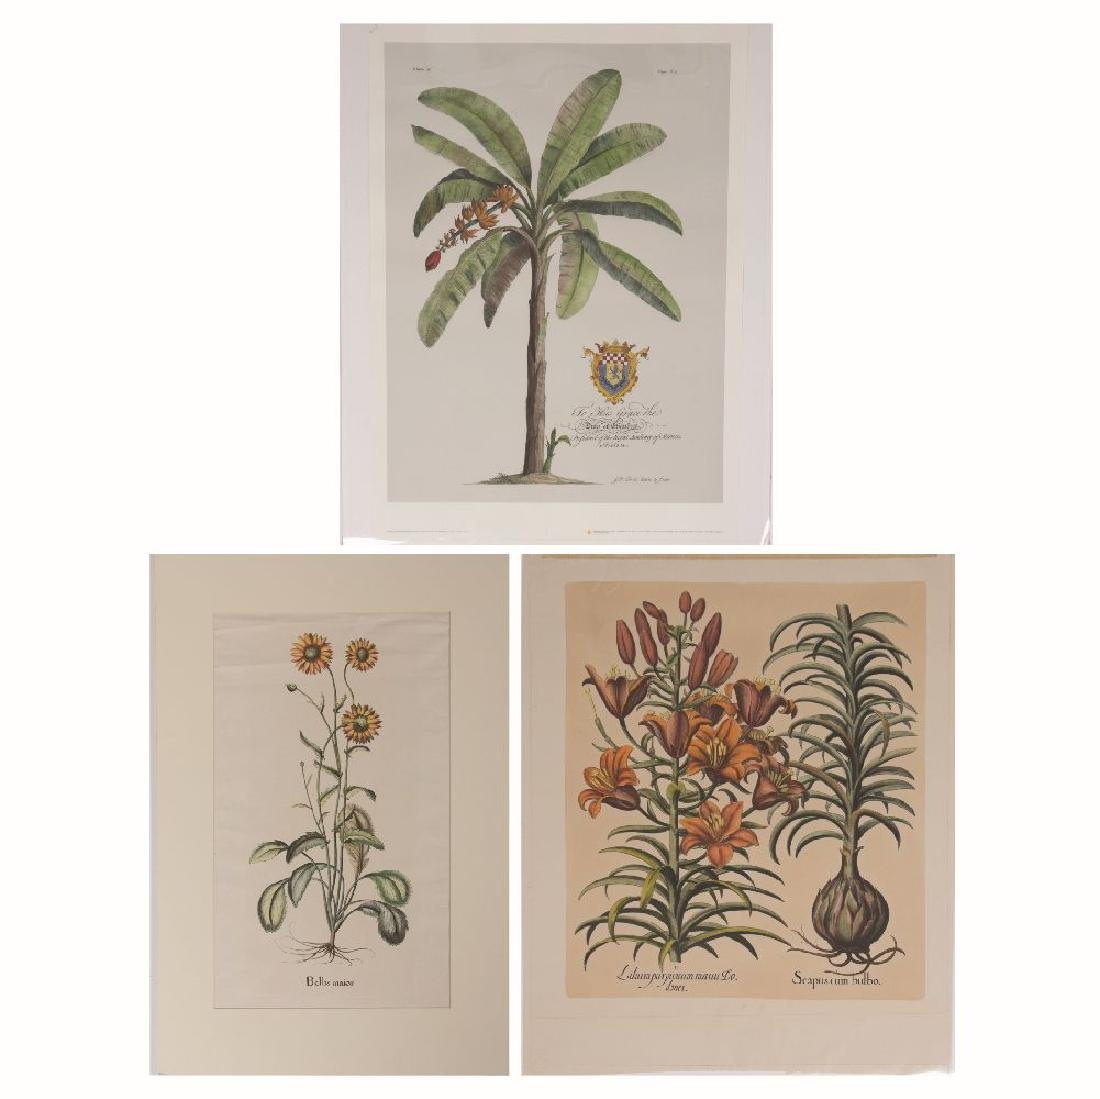 A Group of Three Botanical Restrike Engravings by